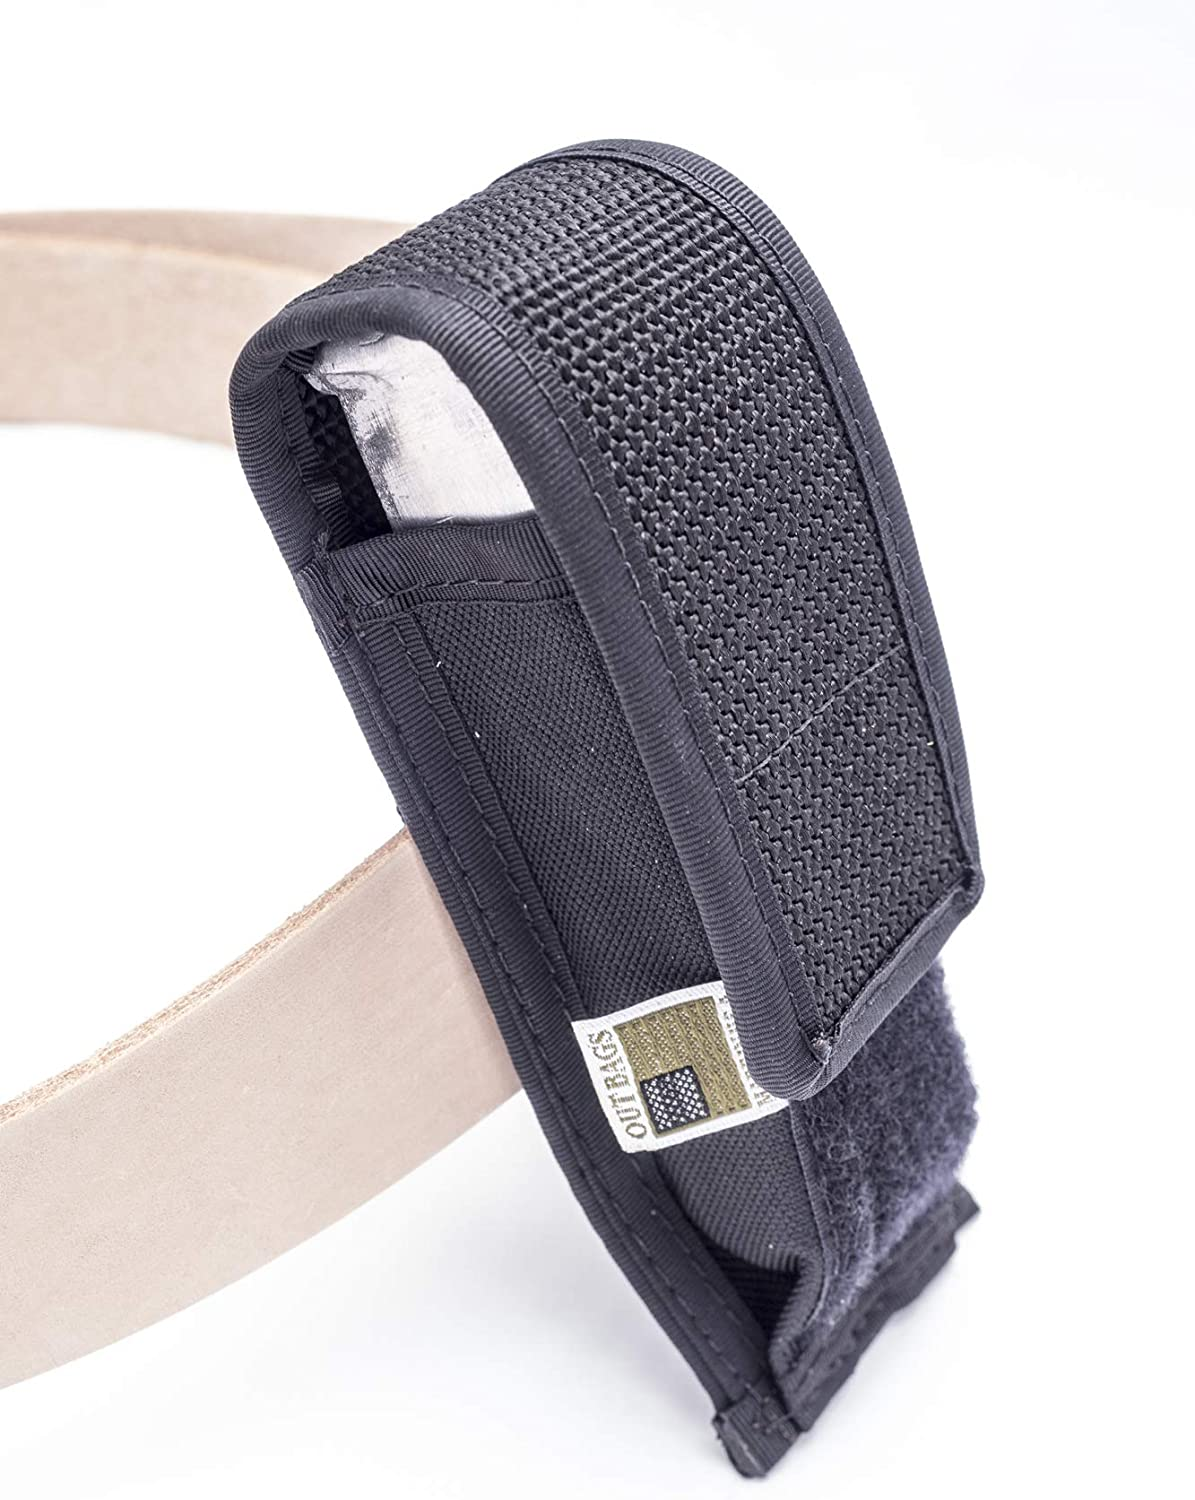 OutBags USA FS-1MP Solo Magazine Pouch Double OFFicial Max 54% OFF shop for Sta and Single